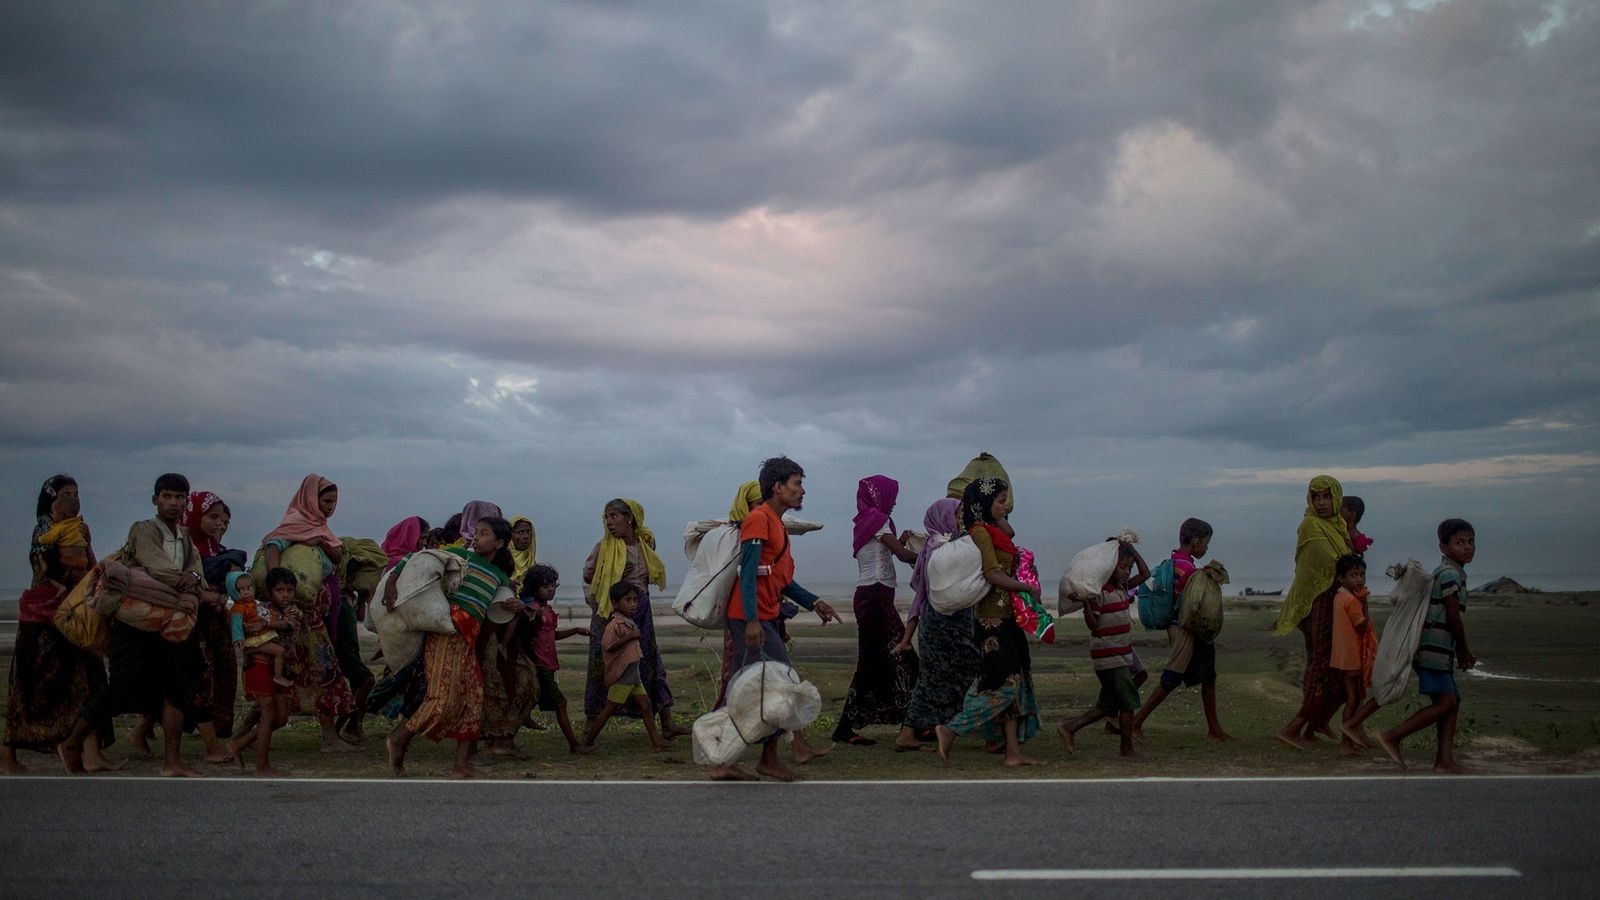 Rohingyan refugees, forced to migrate to Bangladesh from Myanmar, walk in search of refugee camps.